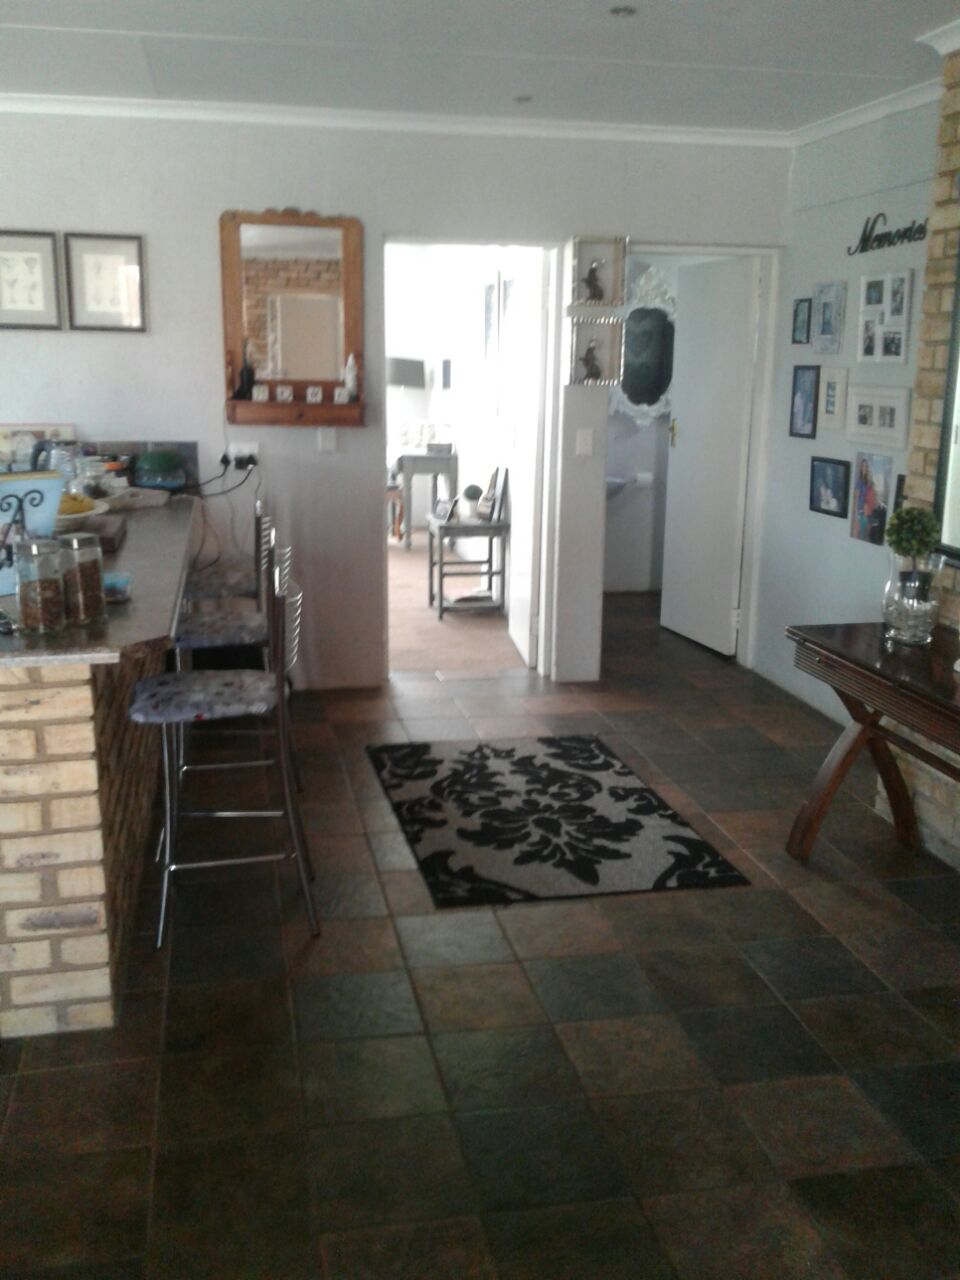 Krugersdorp Beautiful Spacious house to let. R 7500 pm.